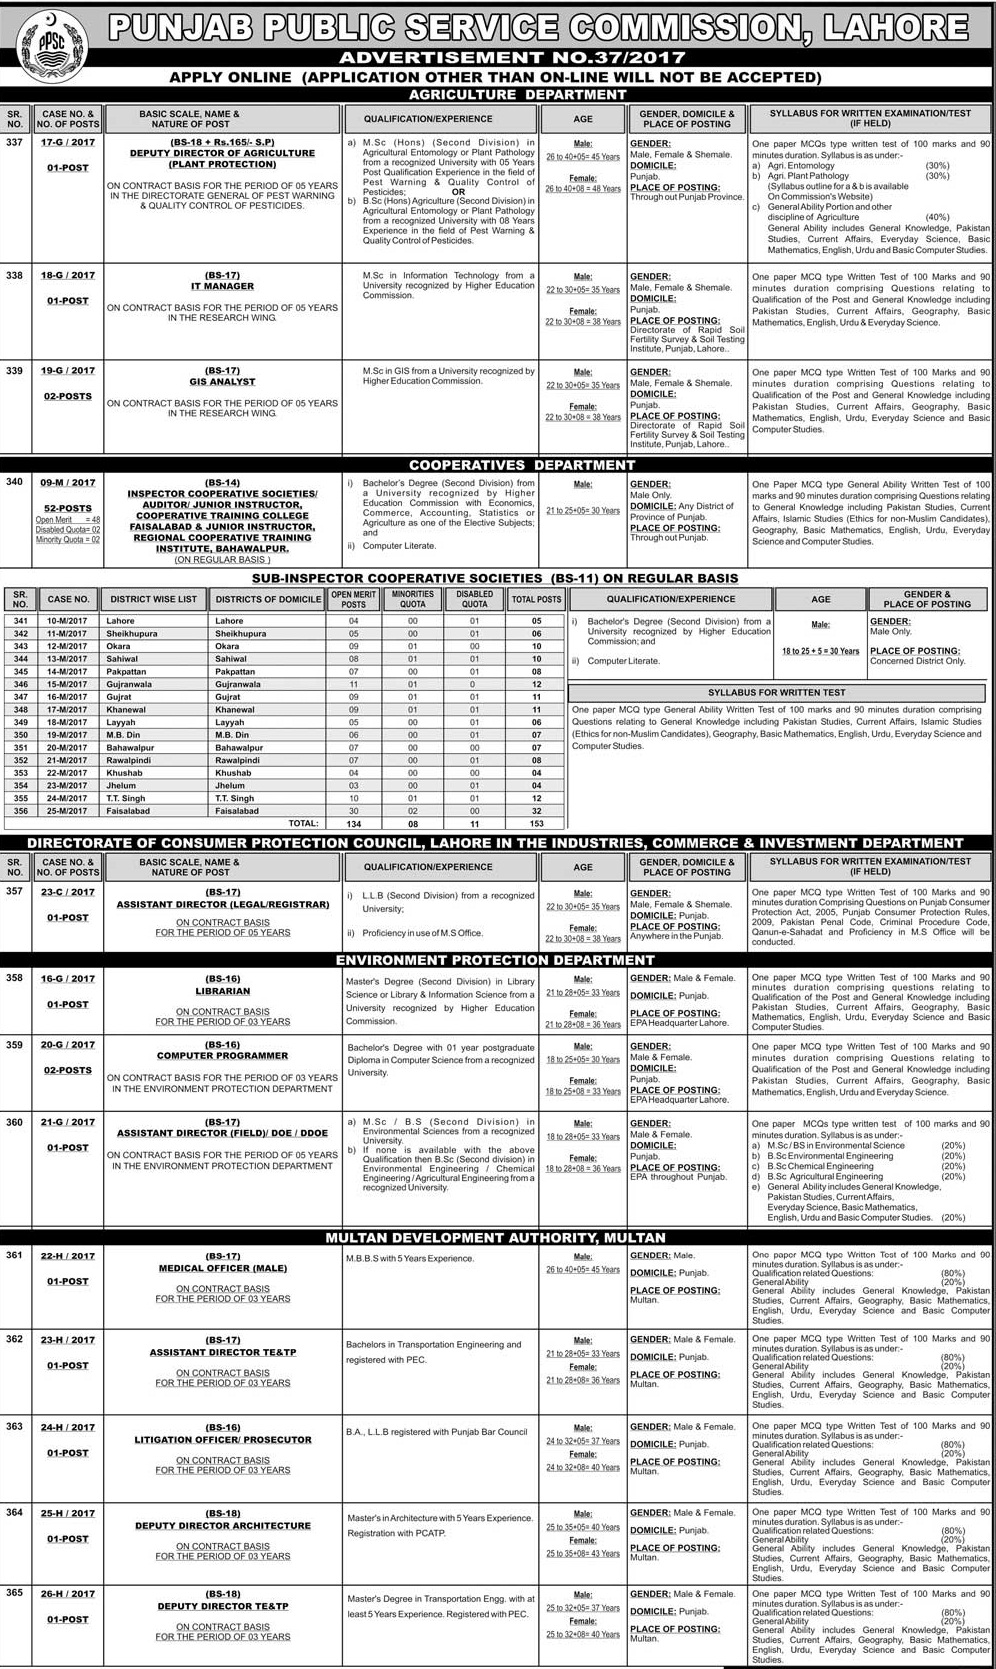 PPSC Inspector Coperative Society Jobs 2017 announced